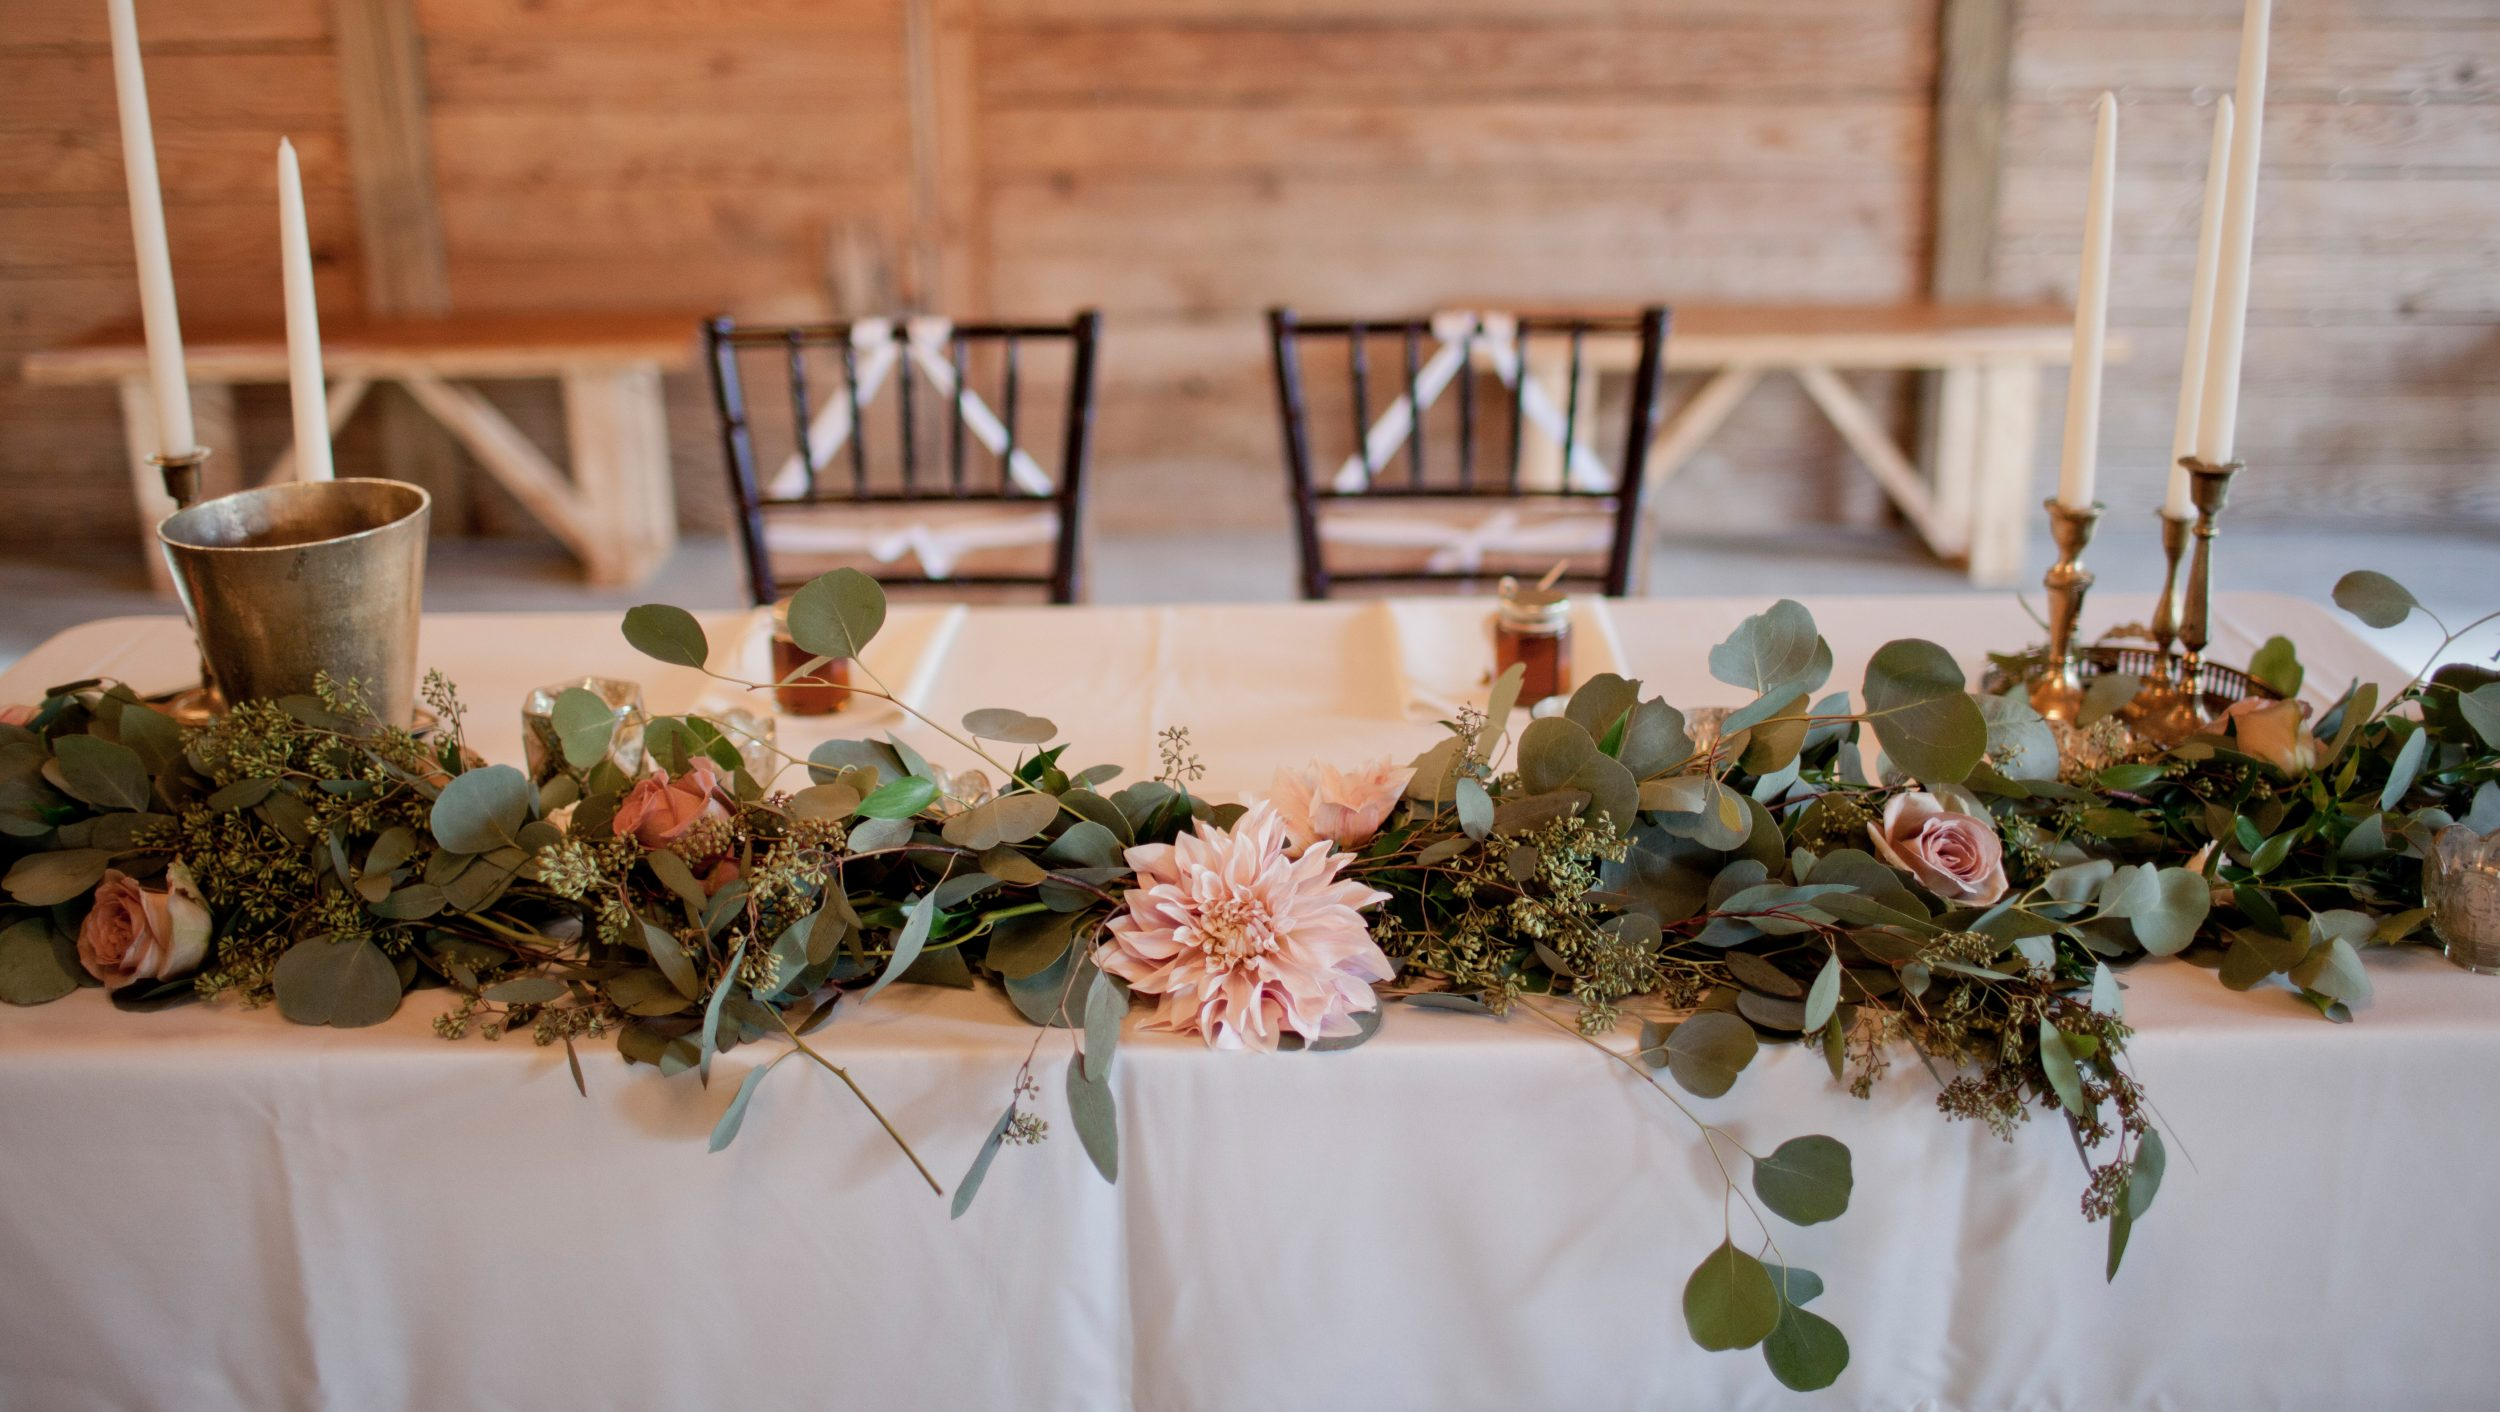 Keys to Planning an Outdoor Wedding